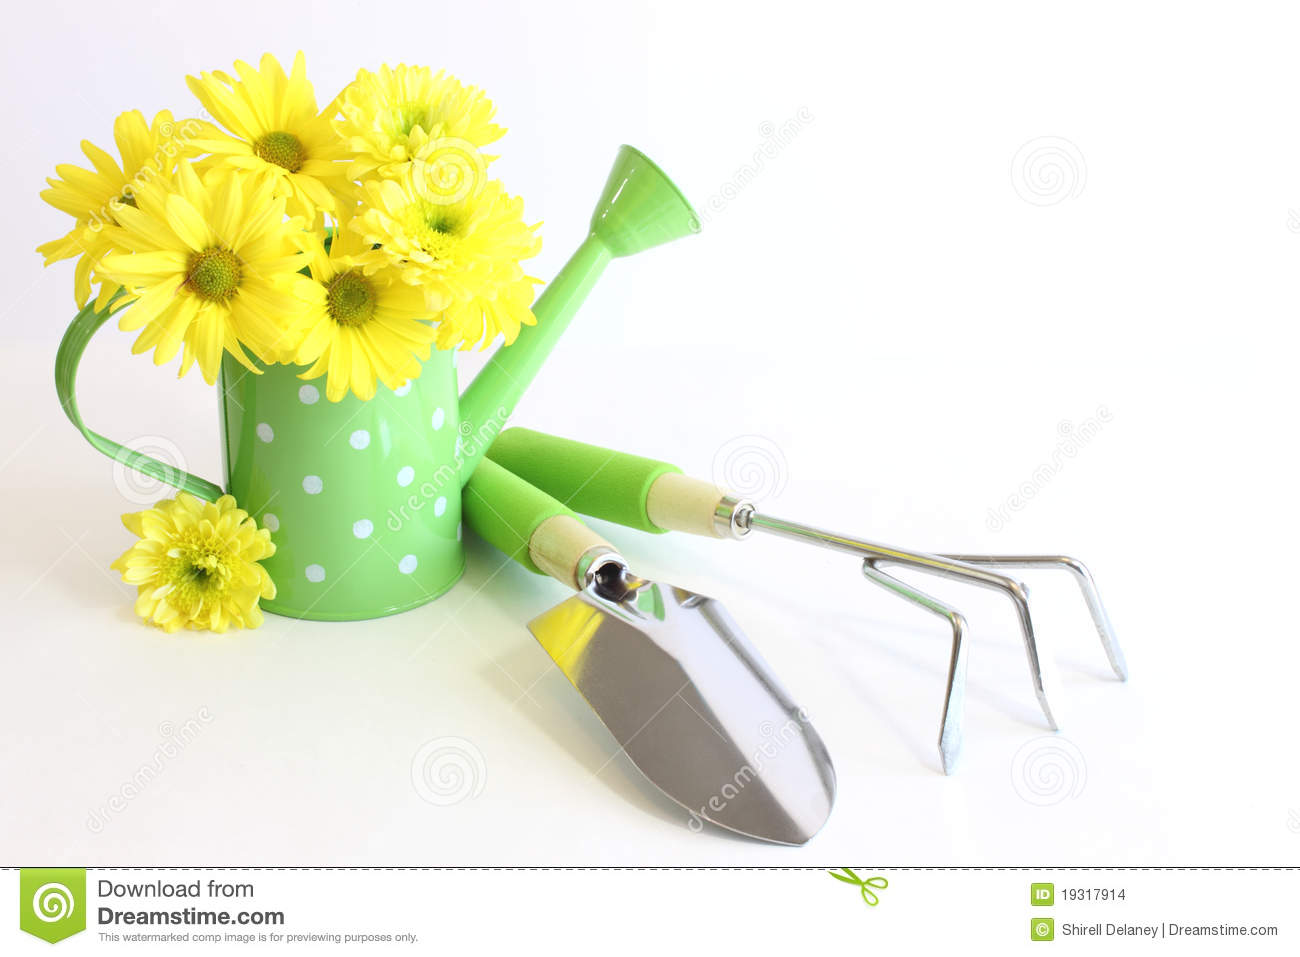 Green Gardening Tools with Yellow Flowers